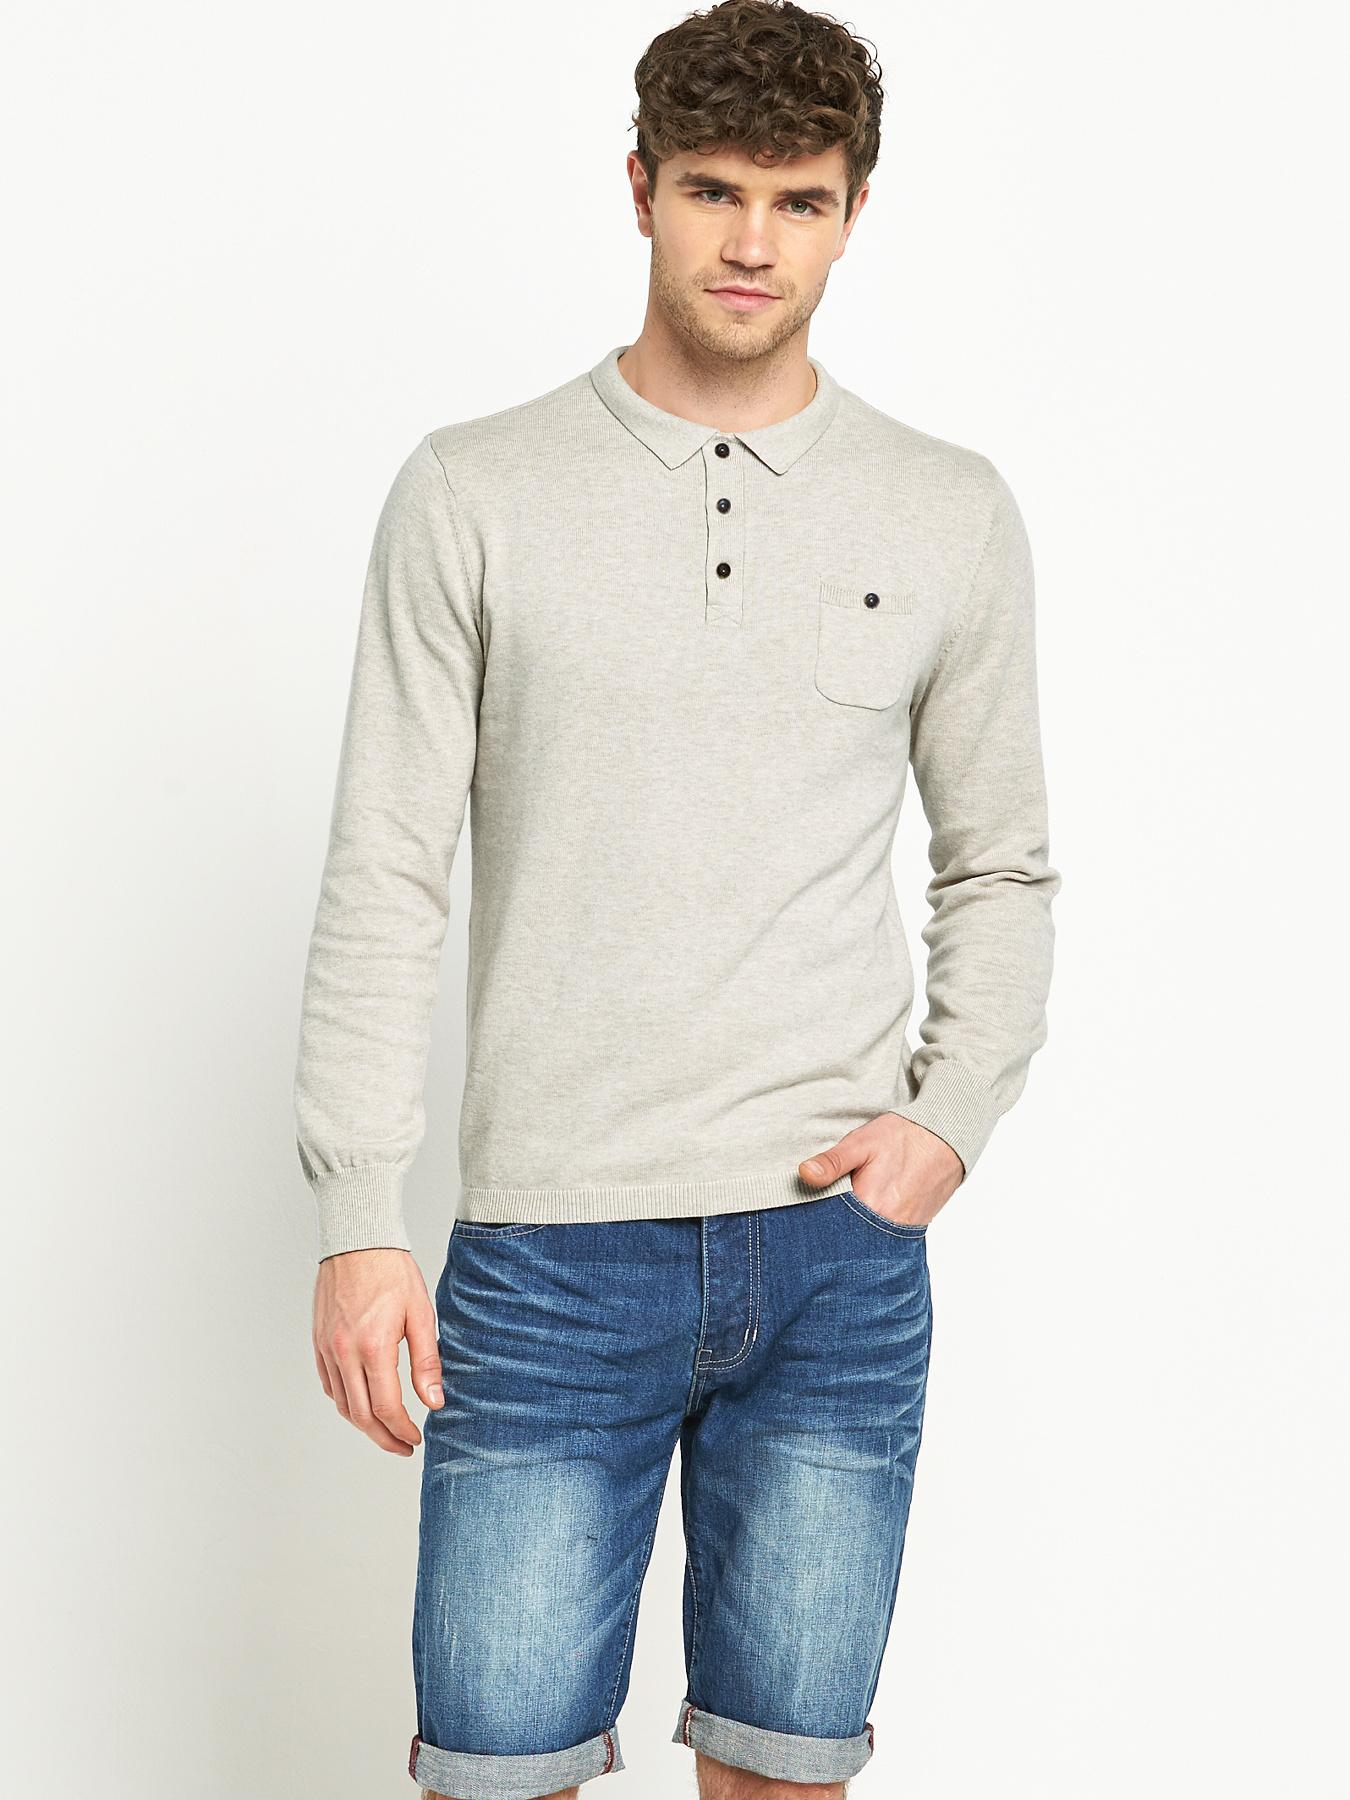 Goodsouls Mens Long Sleeve Knitted Polo Shirt - Stone, Stone